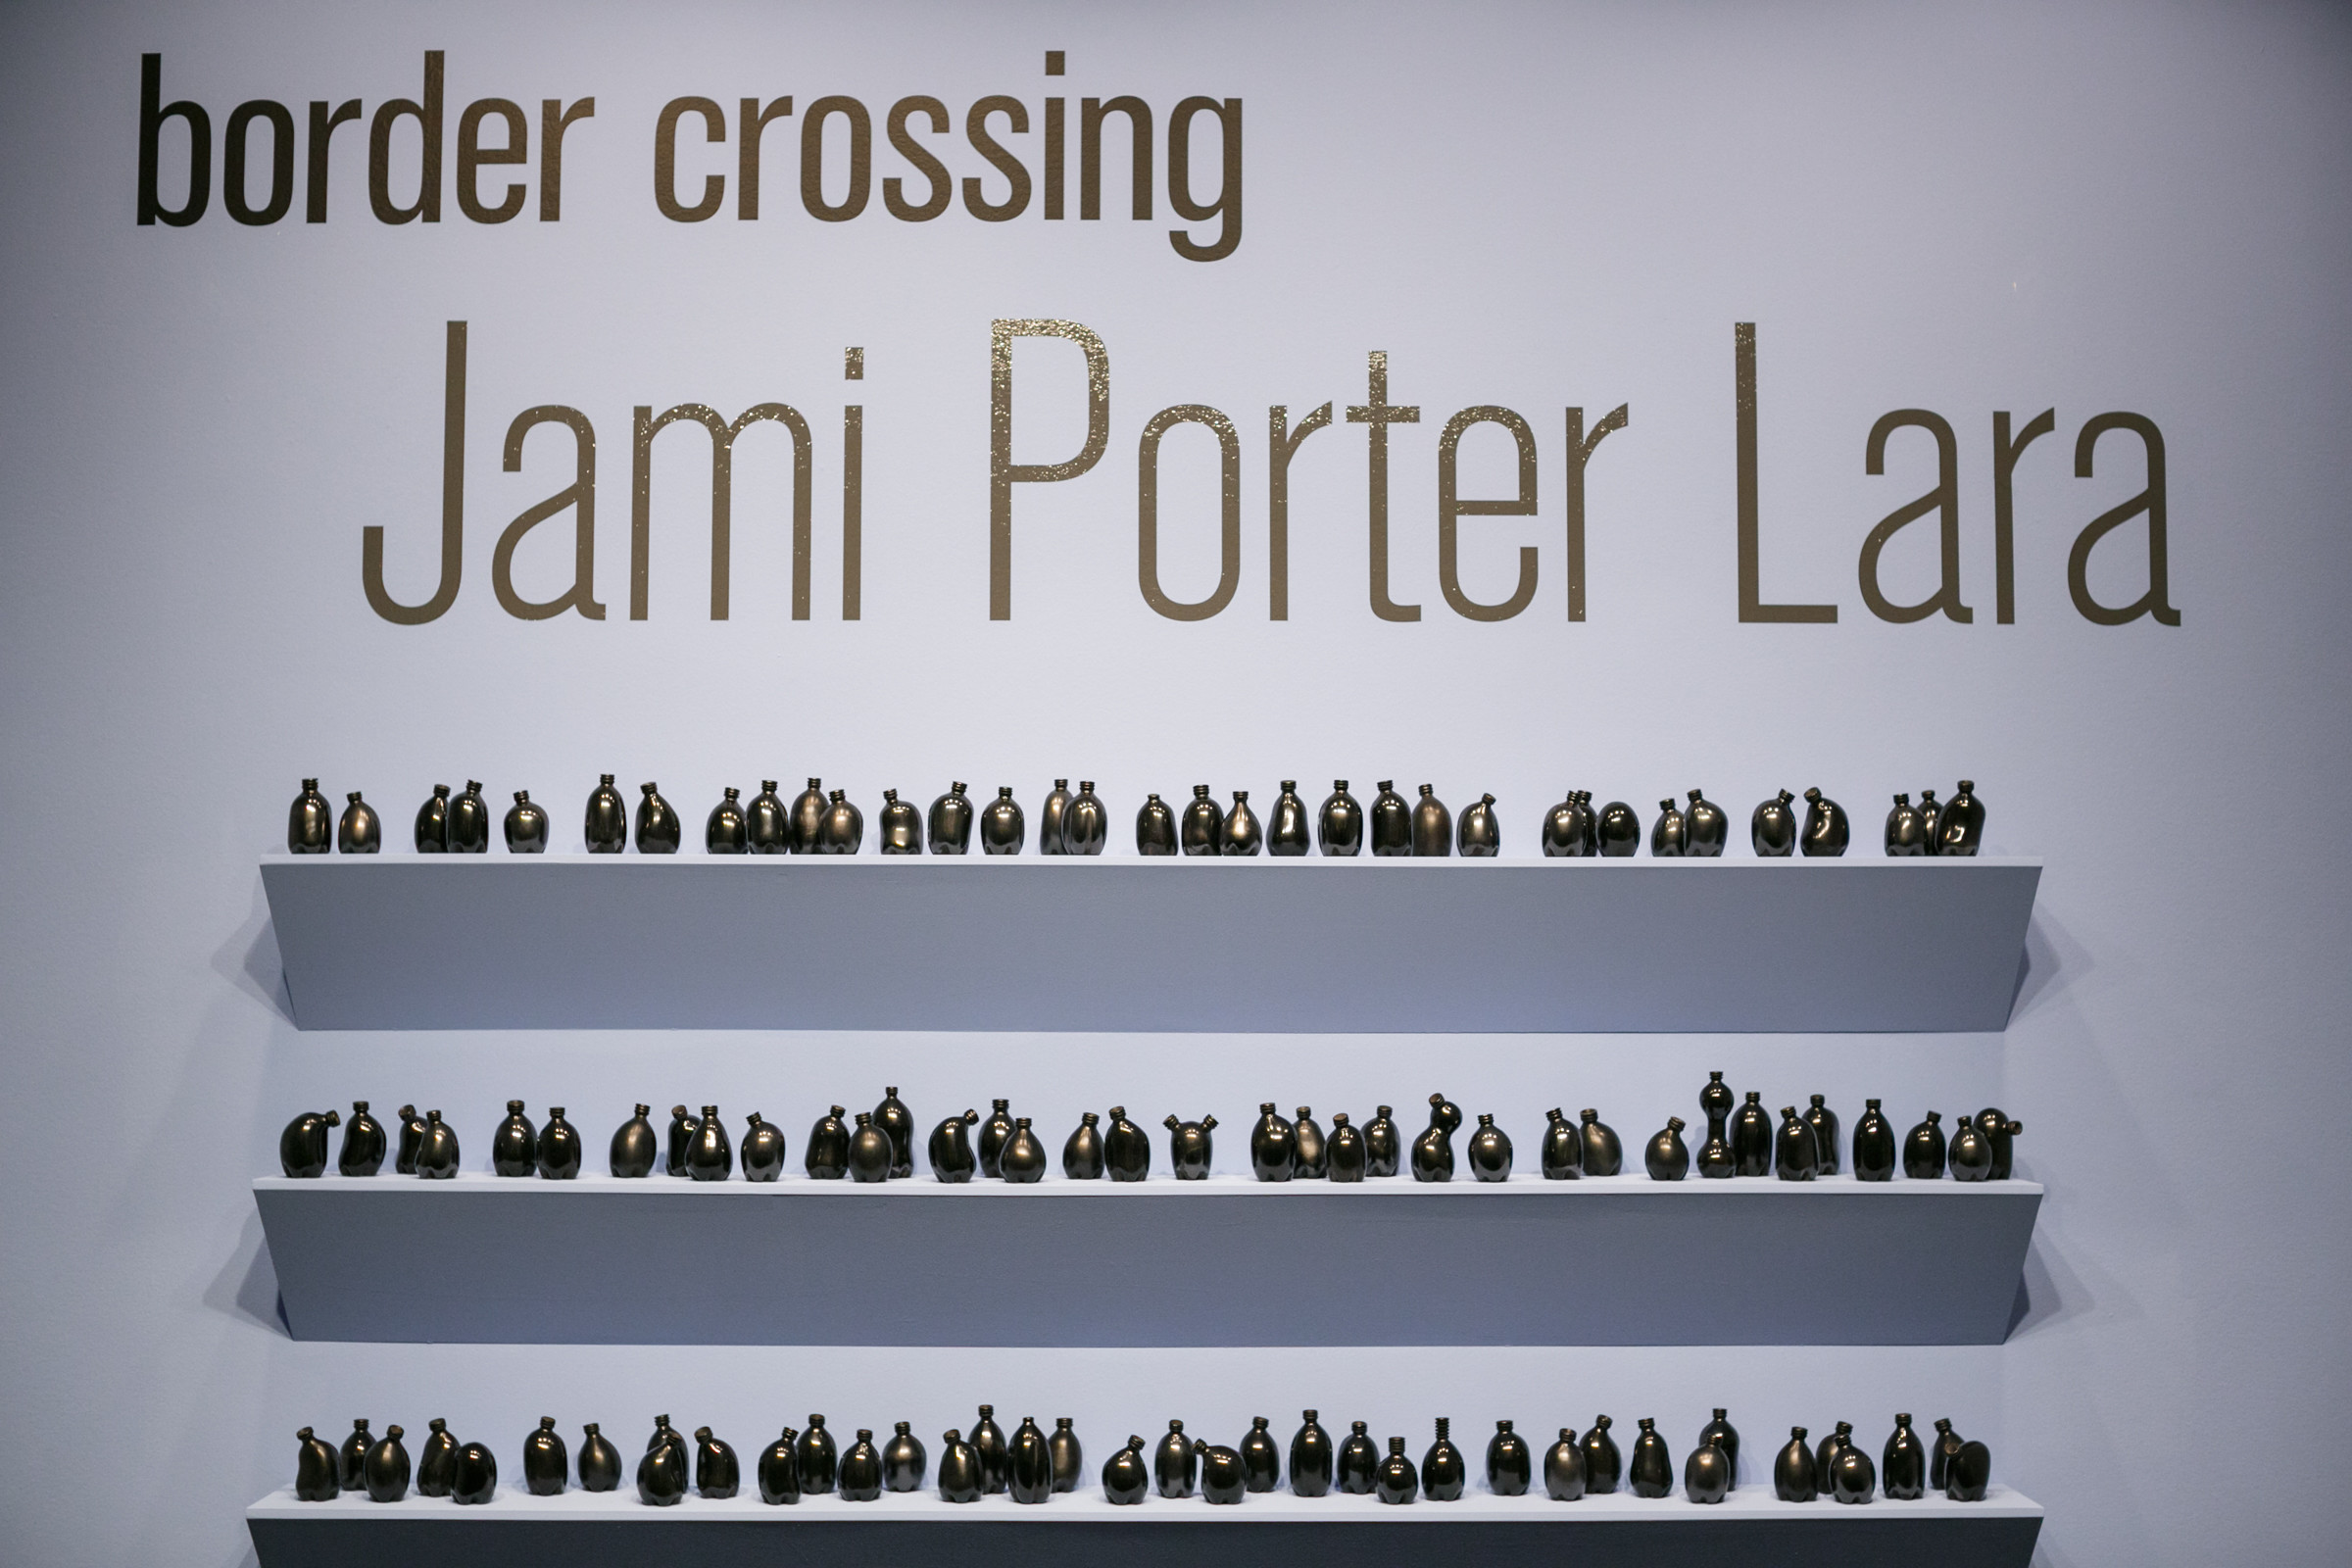 Shelves of small misshapen bottles in various shapes with the name of the exhibition above: Border Crossing: Jami Porter Lara above